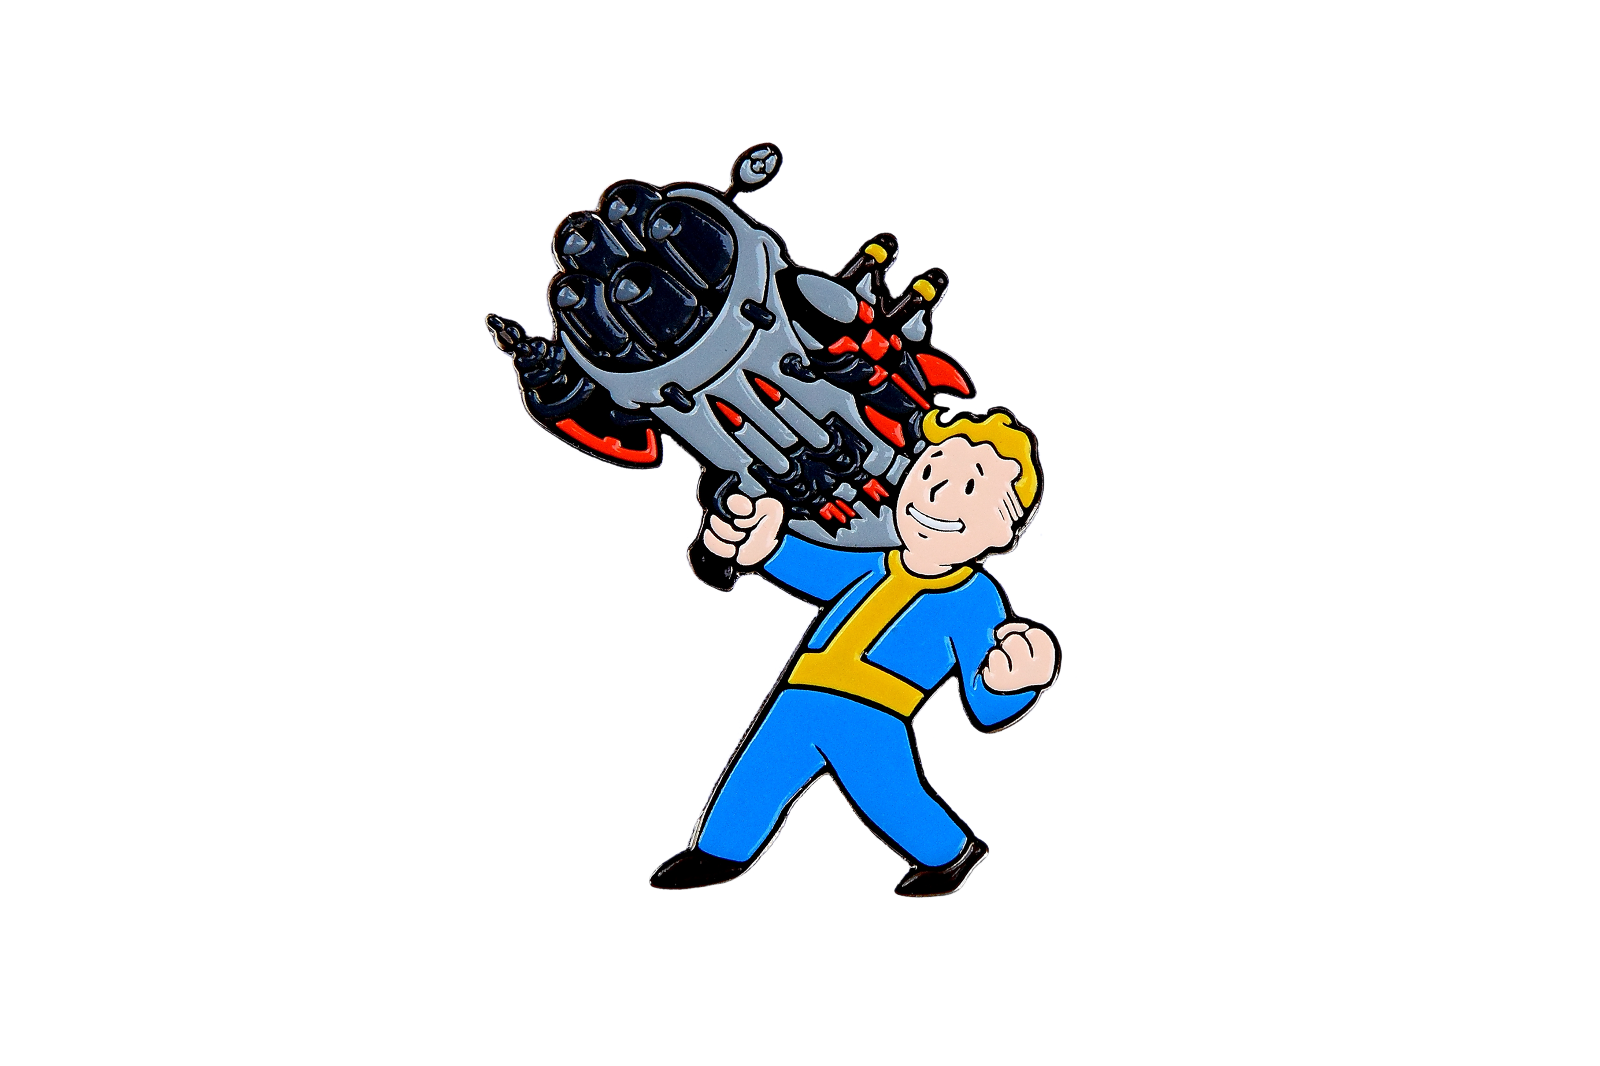 FALLOUT 4 VAULT Boy Metal Pin Big Guns Perk - 3 2 New Vegas 4 5 Gun Weapon  TG 76